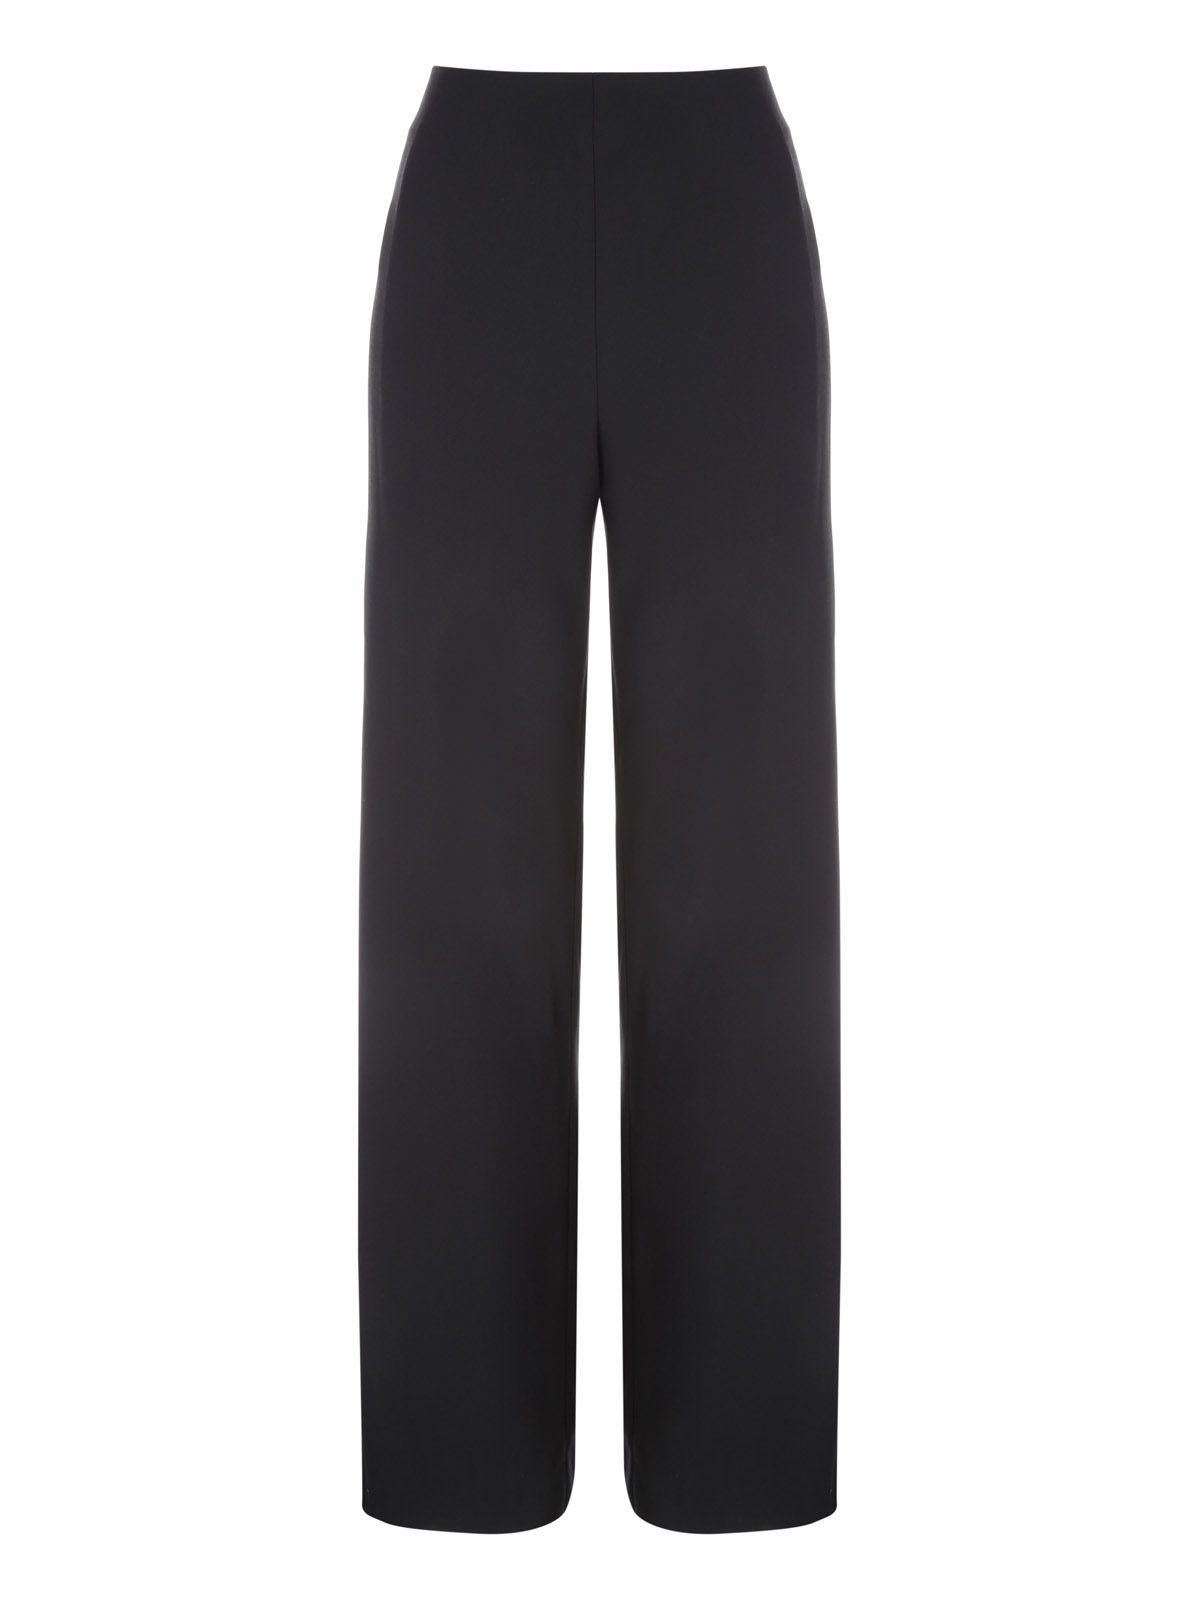 Jane Norman Black Wide Split Leg Trousers, Black